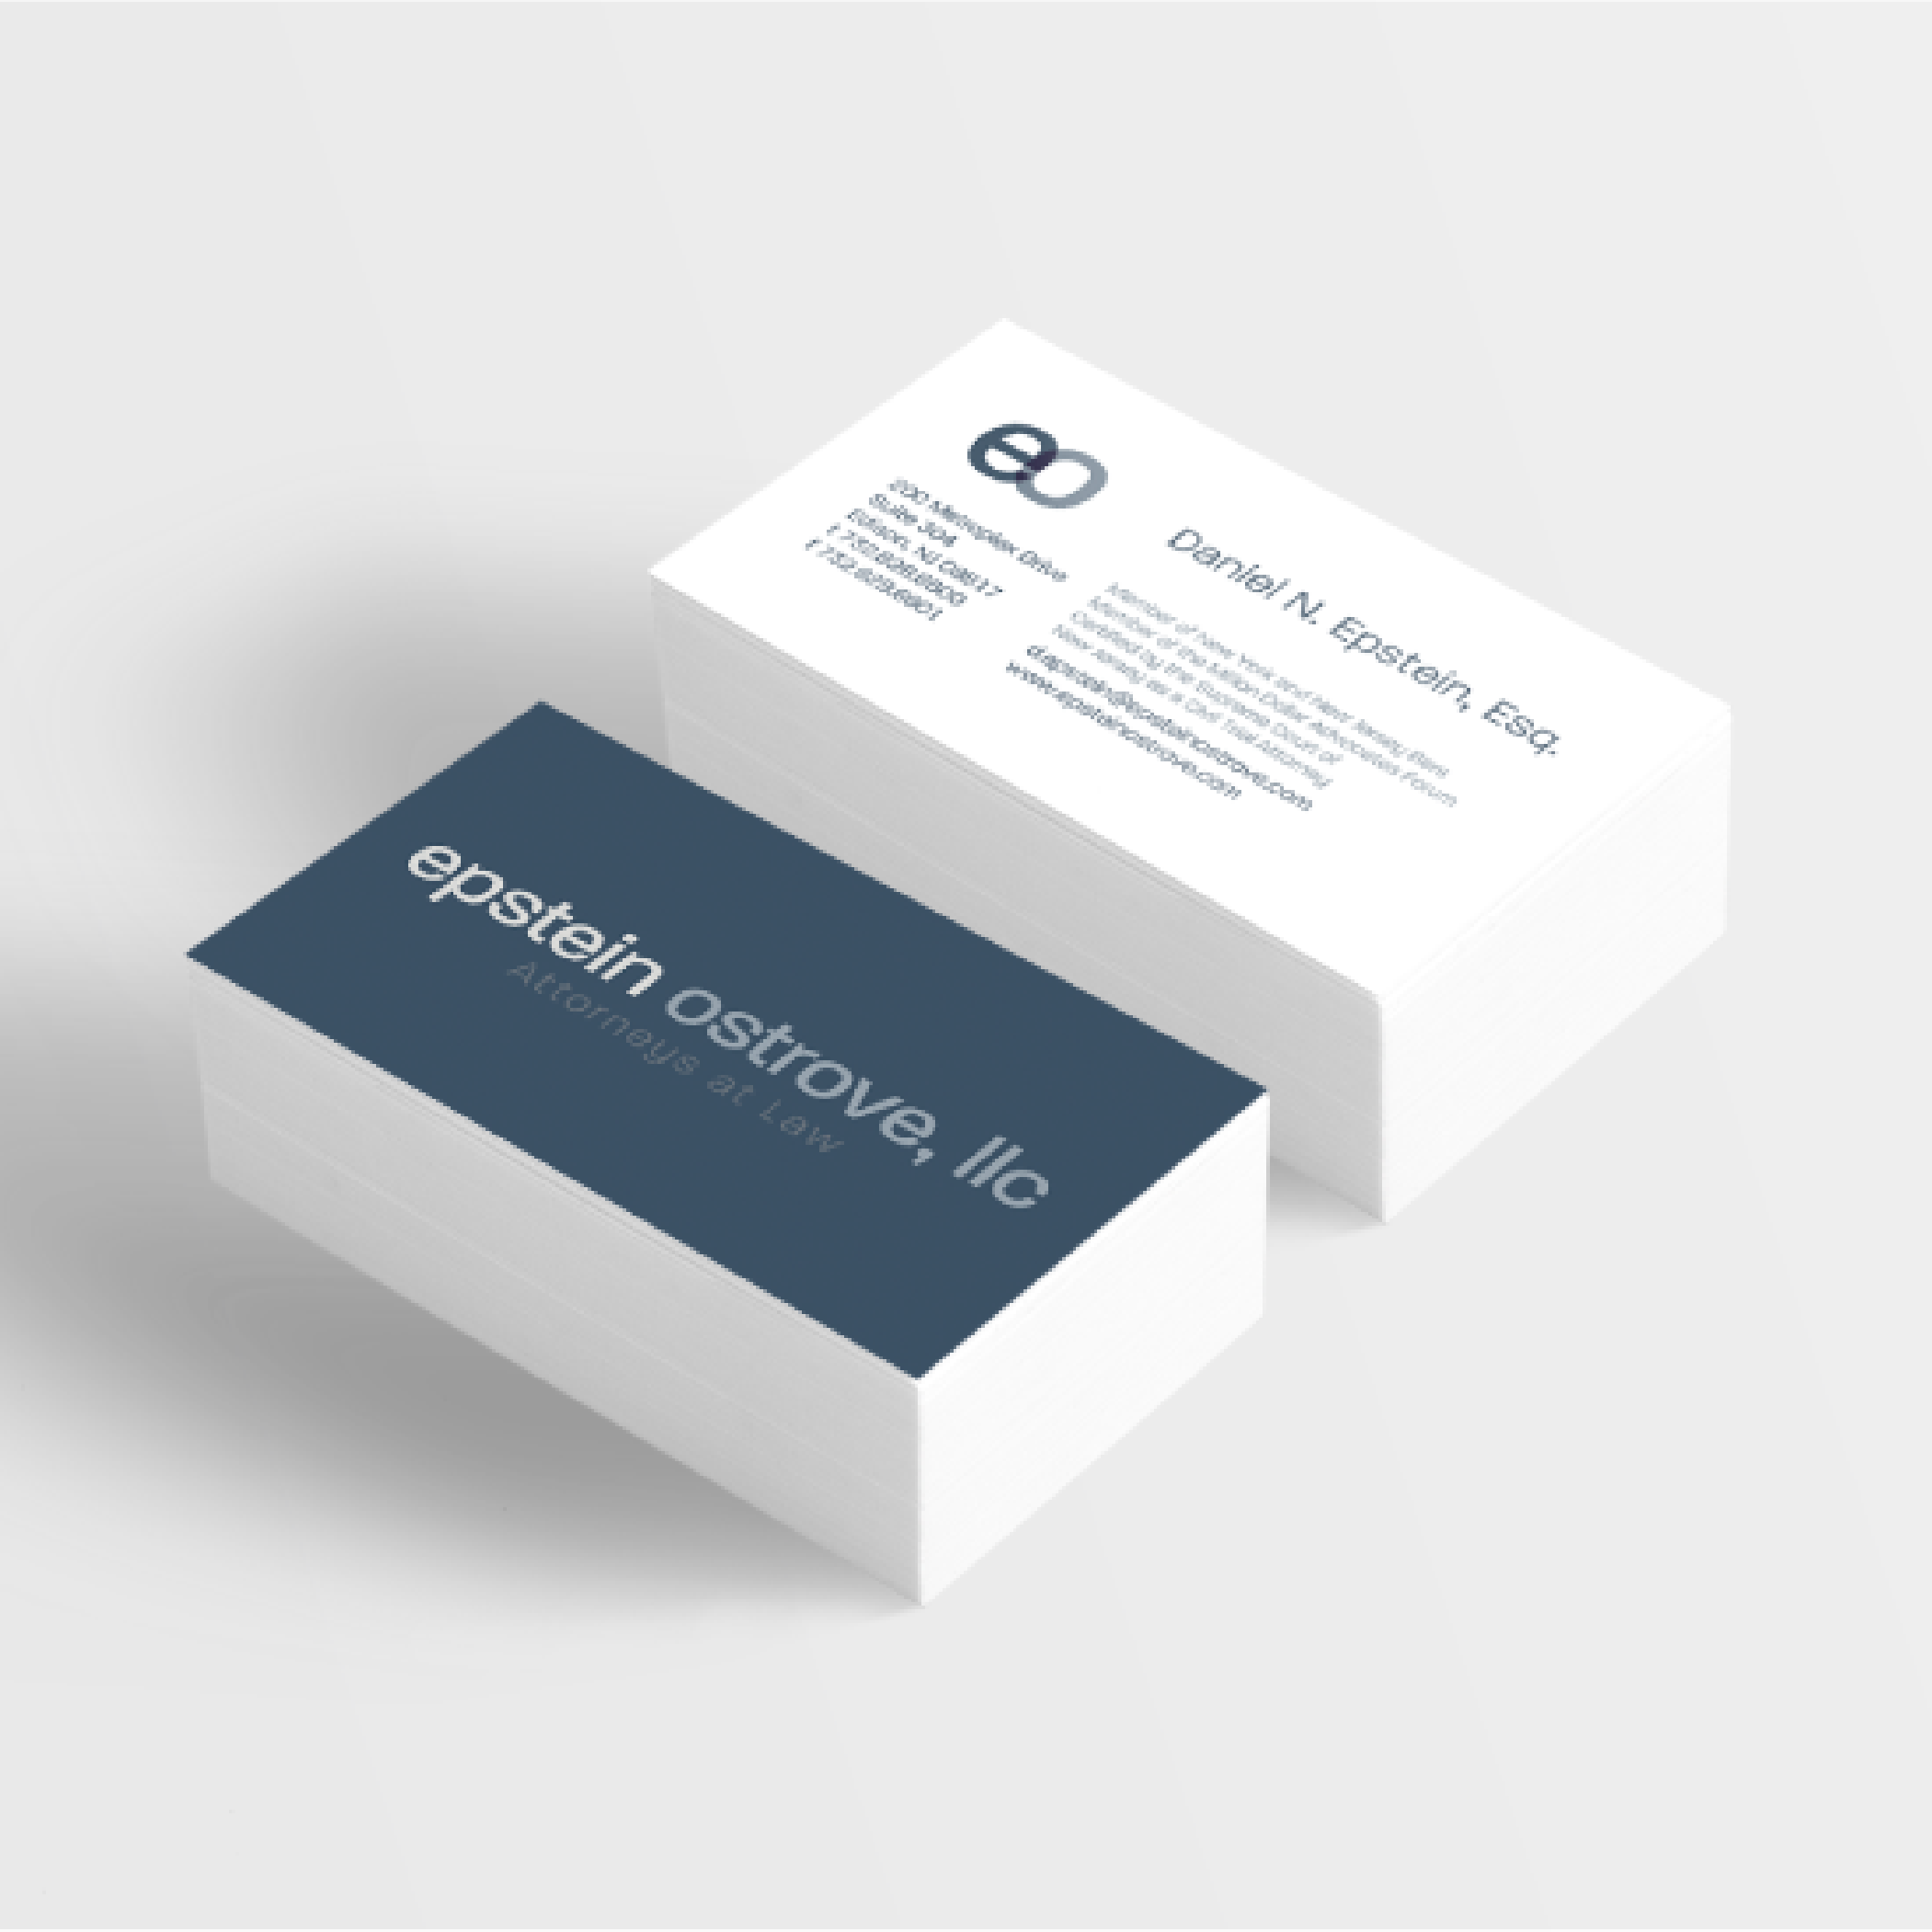 EPstein Ostrove LAW - PROJECTS FOR CLIENT INCLUDE:Logo DesignBusiness Card and Letterhead DesignLobby Sign Design & InstallationCompany Merchandise Design & Production